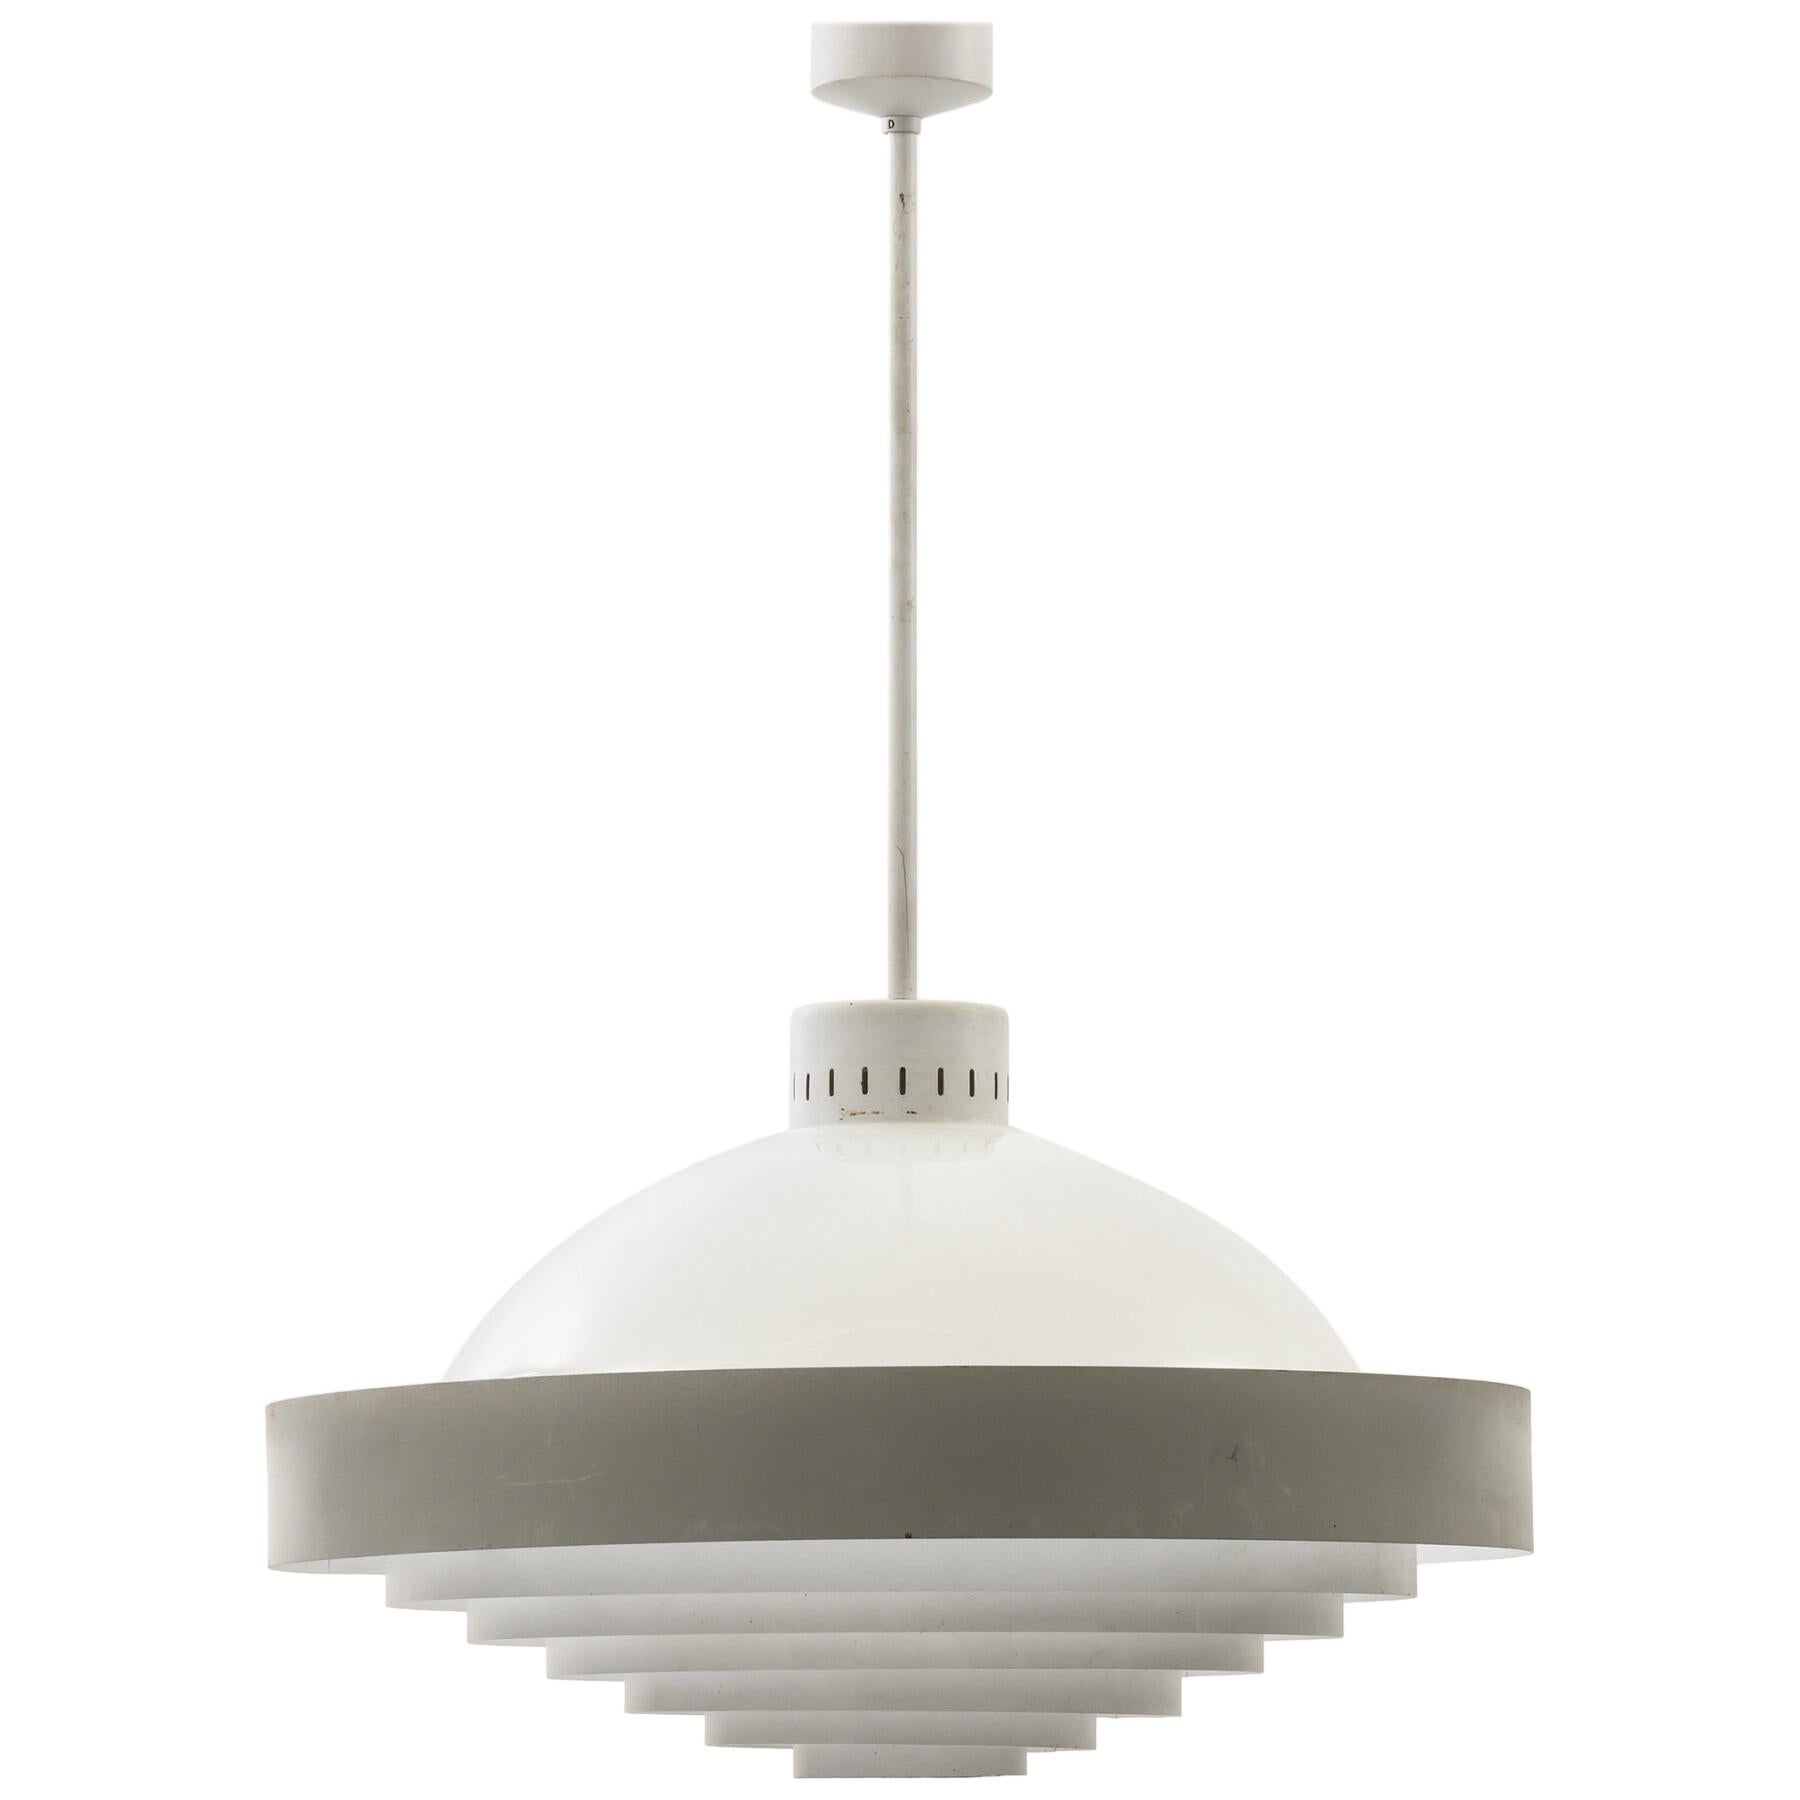 Ceiling Lamps Probably Produced in Sweden